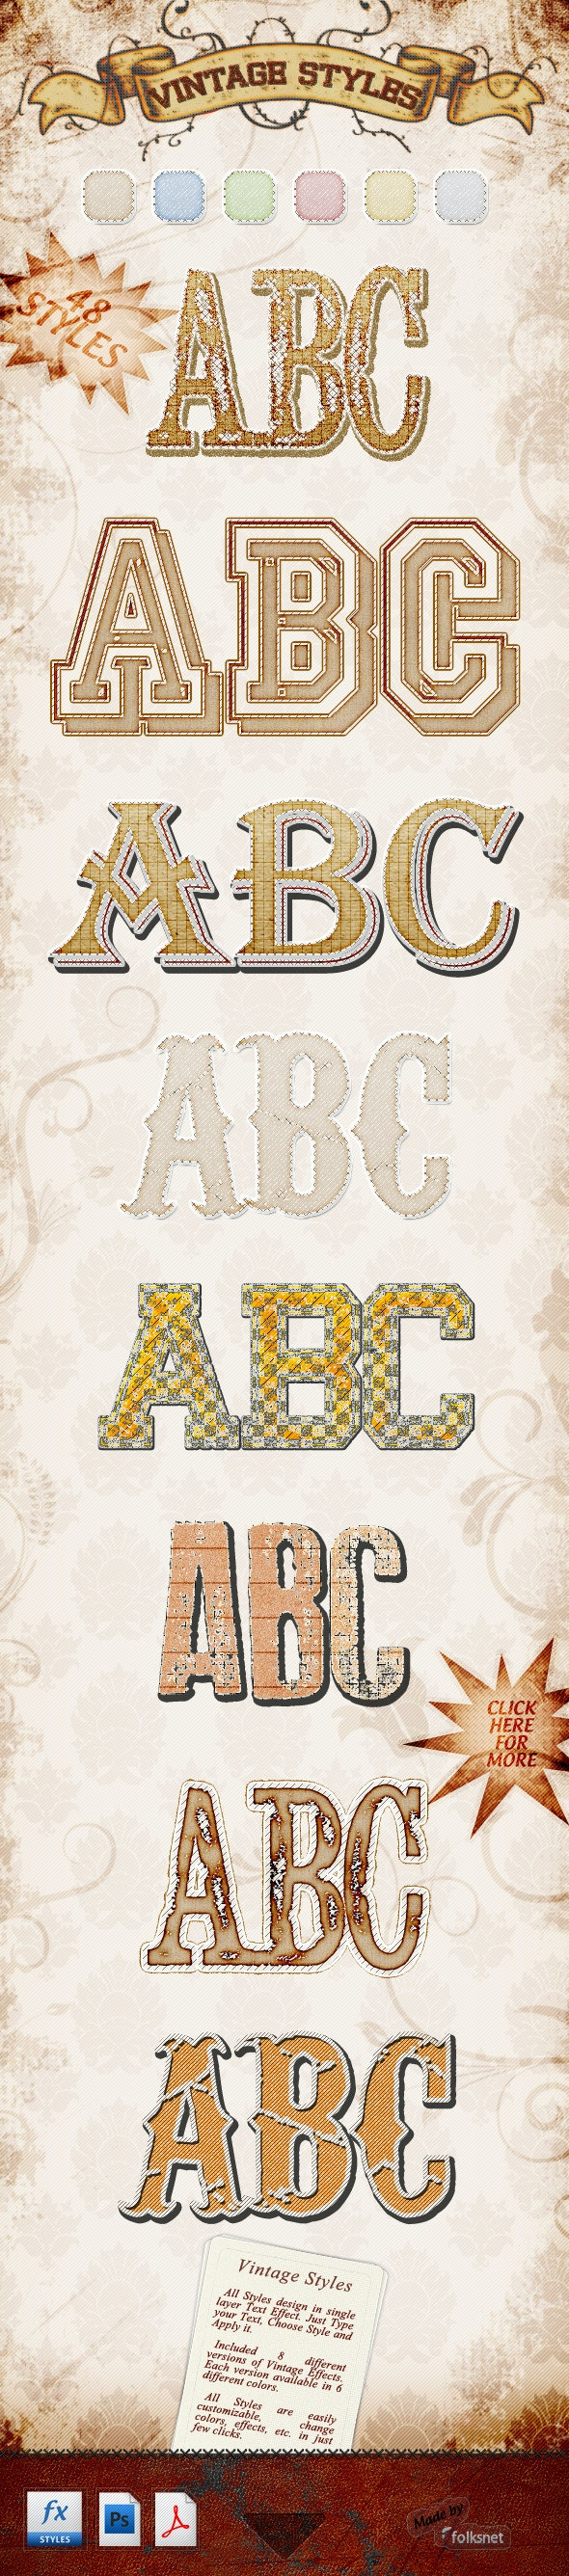 Vintage Styles - Text Effects Styles